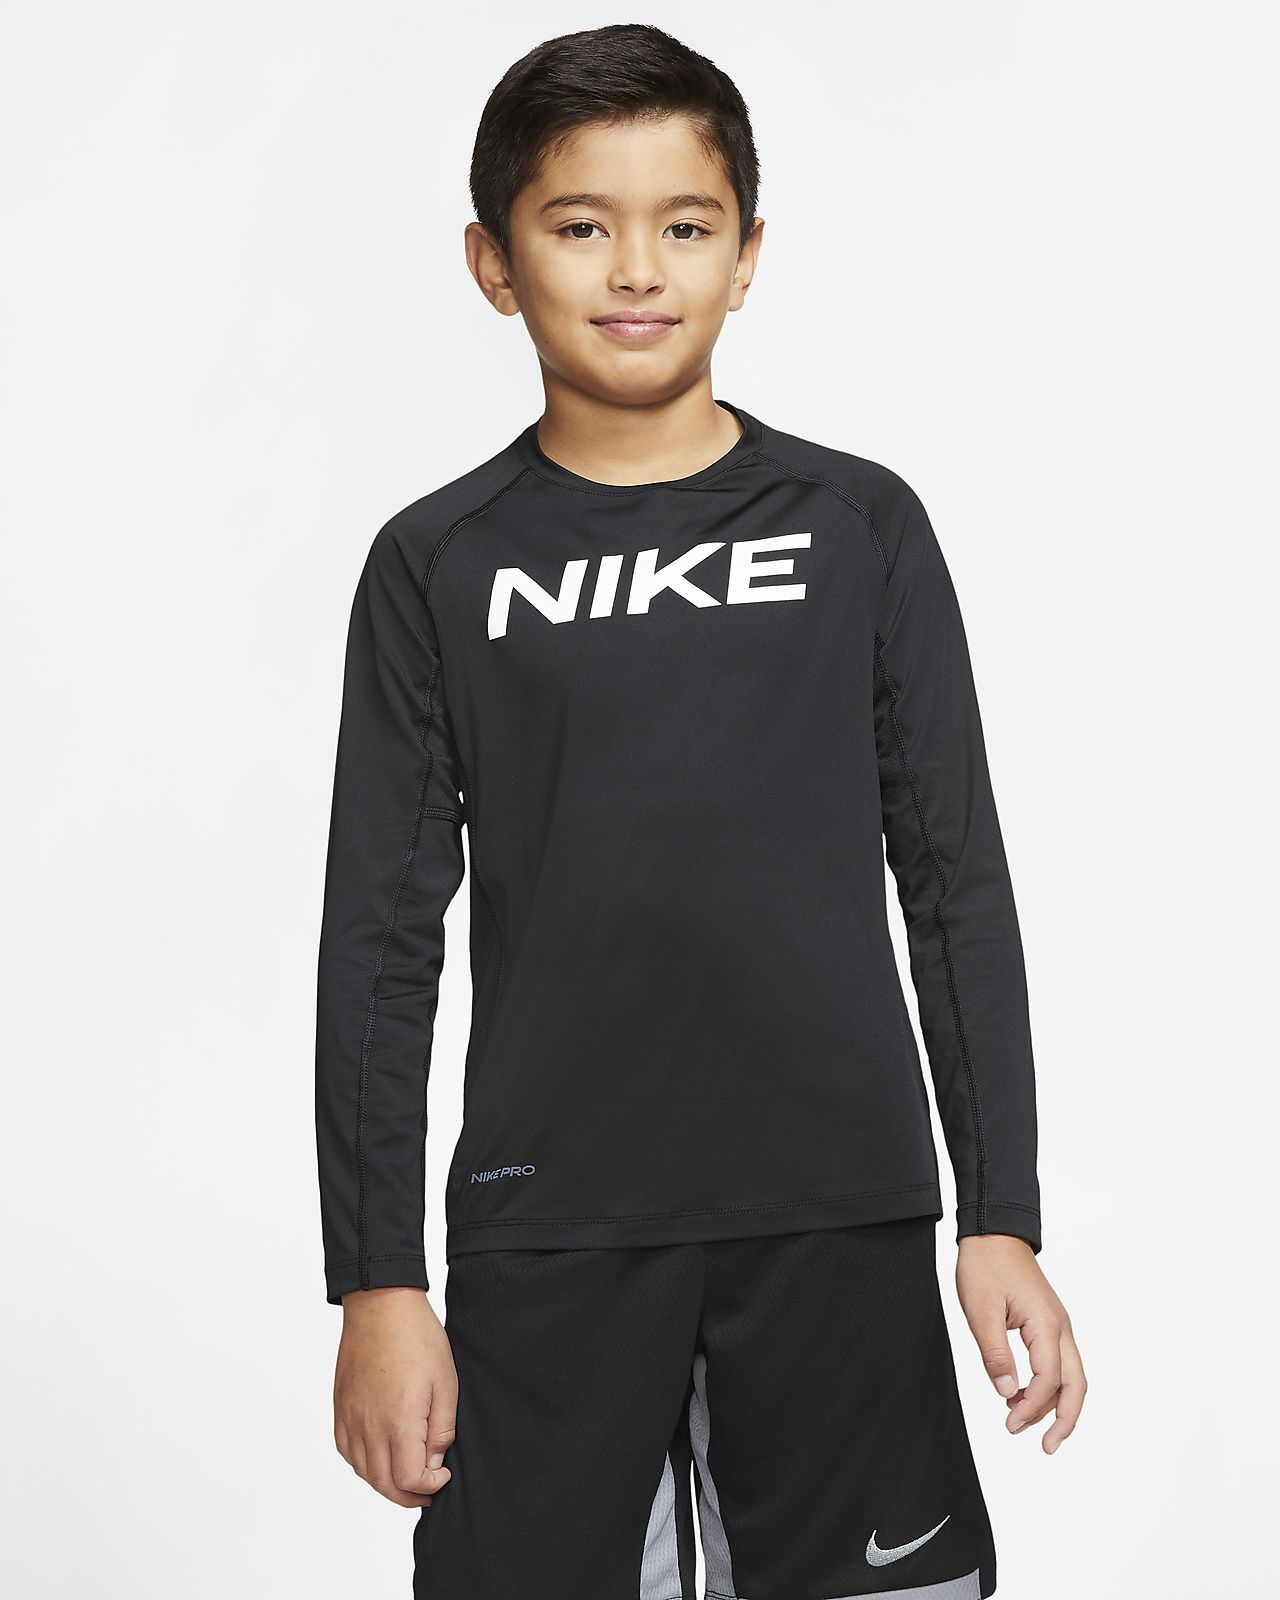 Nike Pro Big Kids' (Boys') Long-Sleeve Training Top